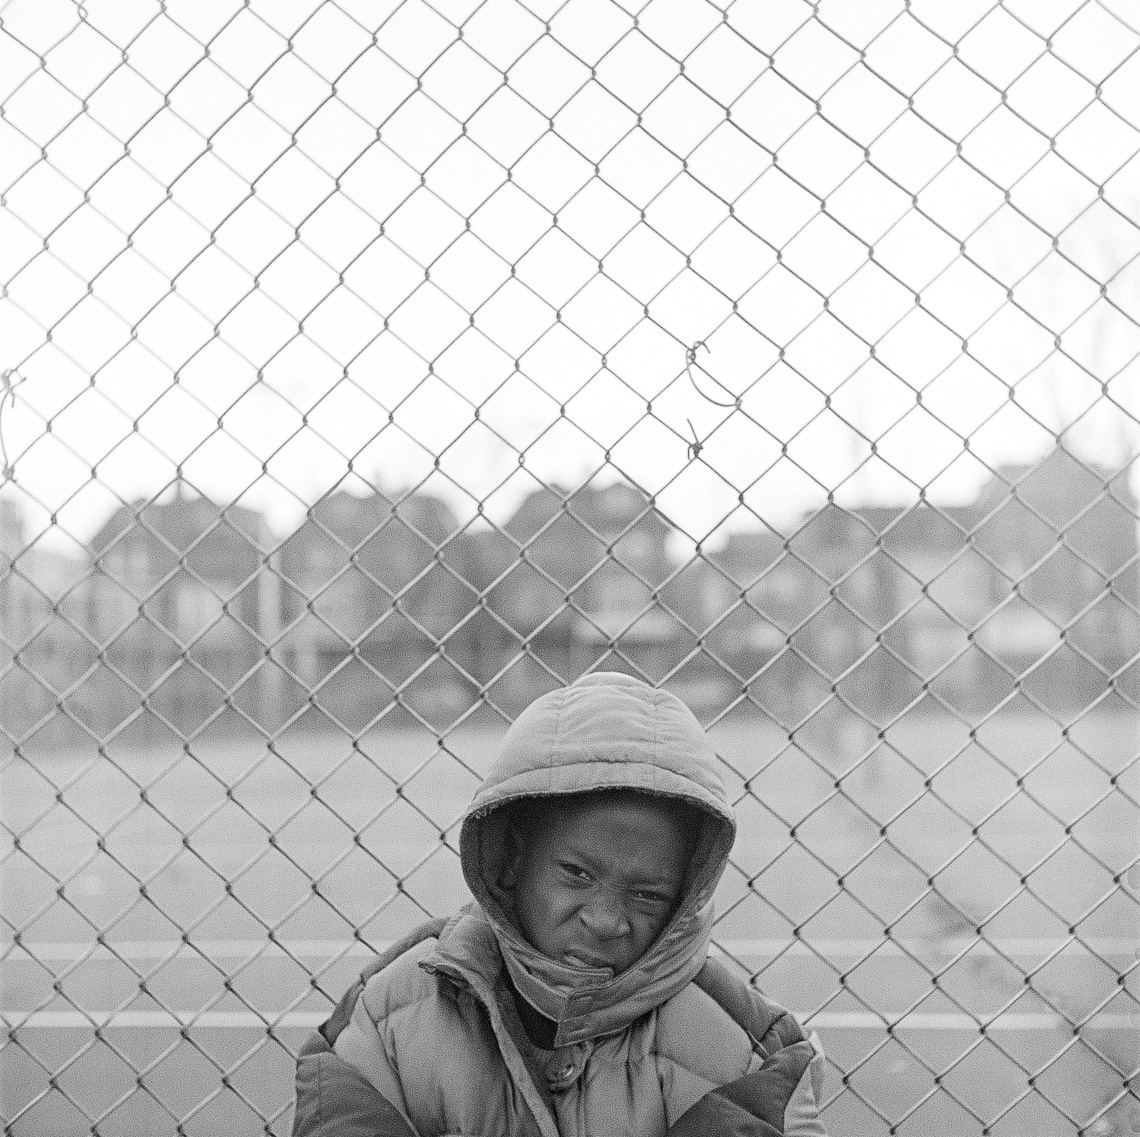 black-white-street-kid-fence-wind